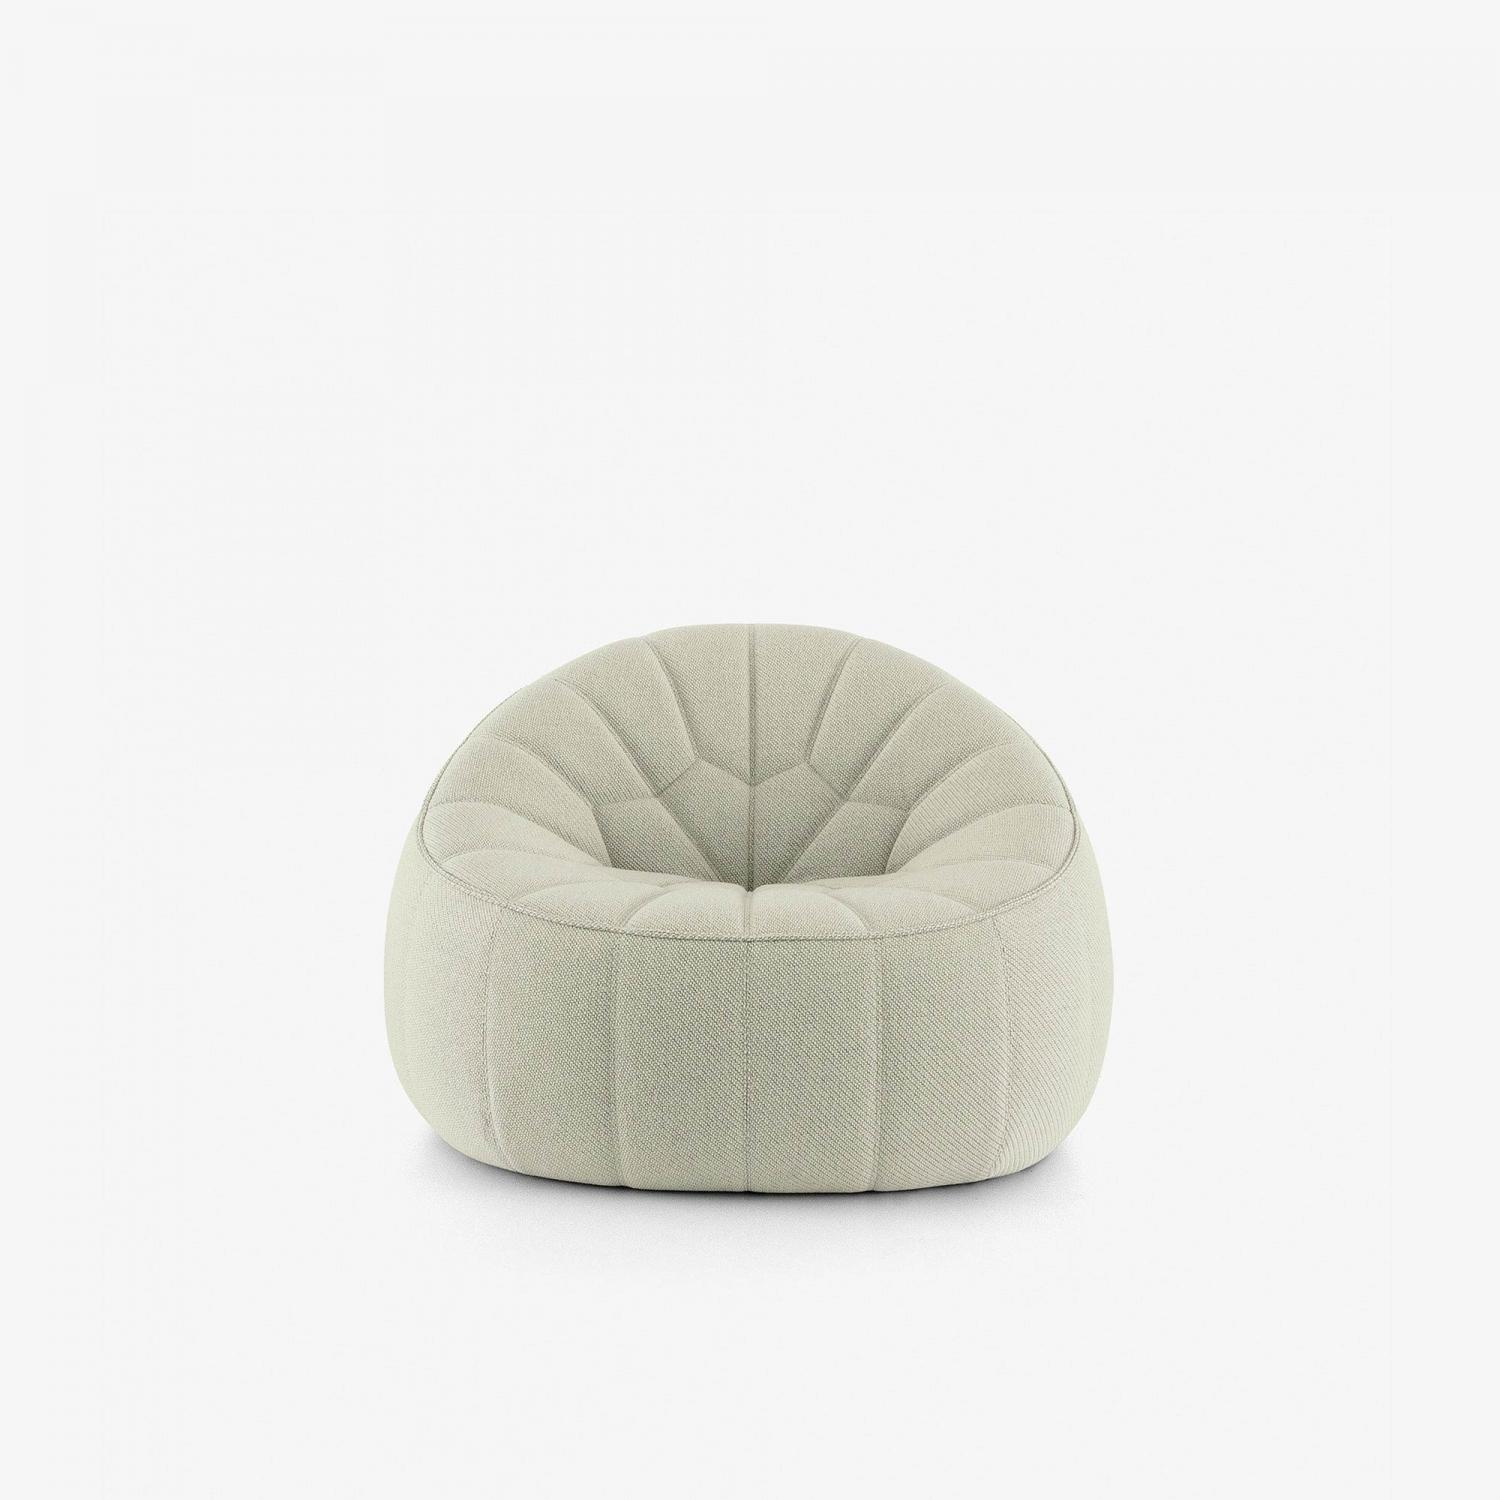 Ottoman Ligne Roset Personalize And Buy Your Product Online